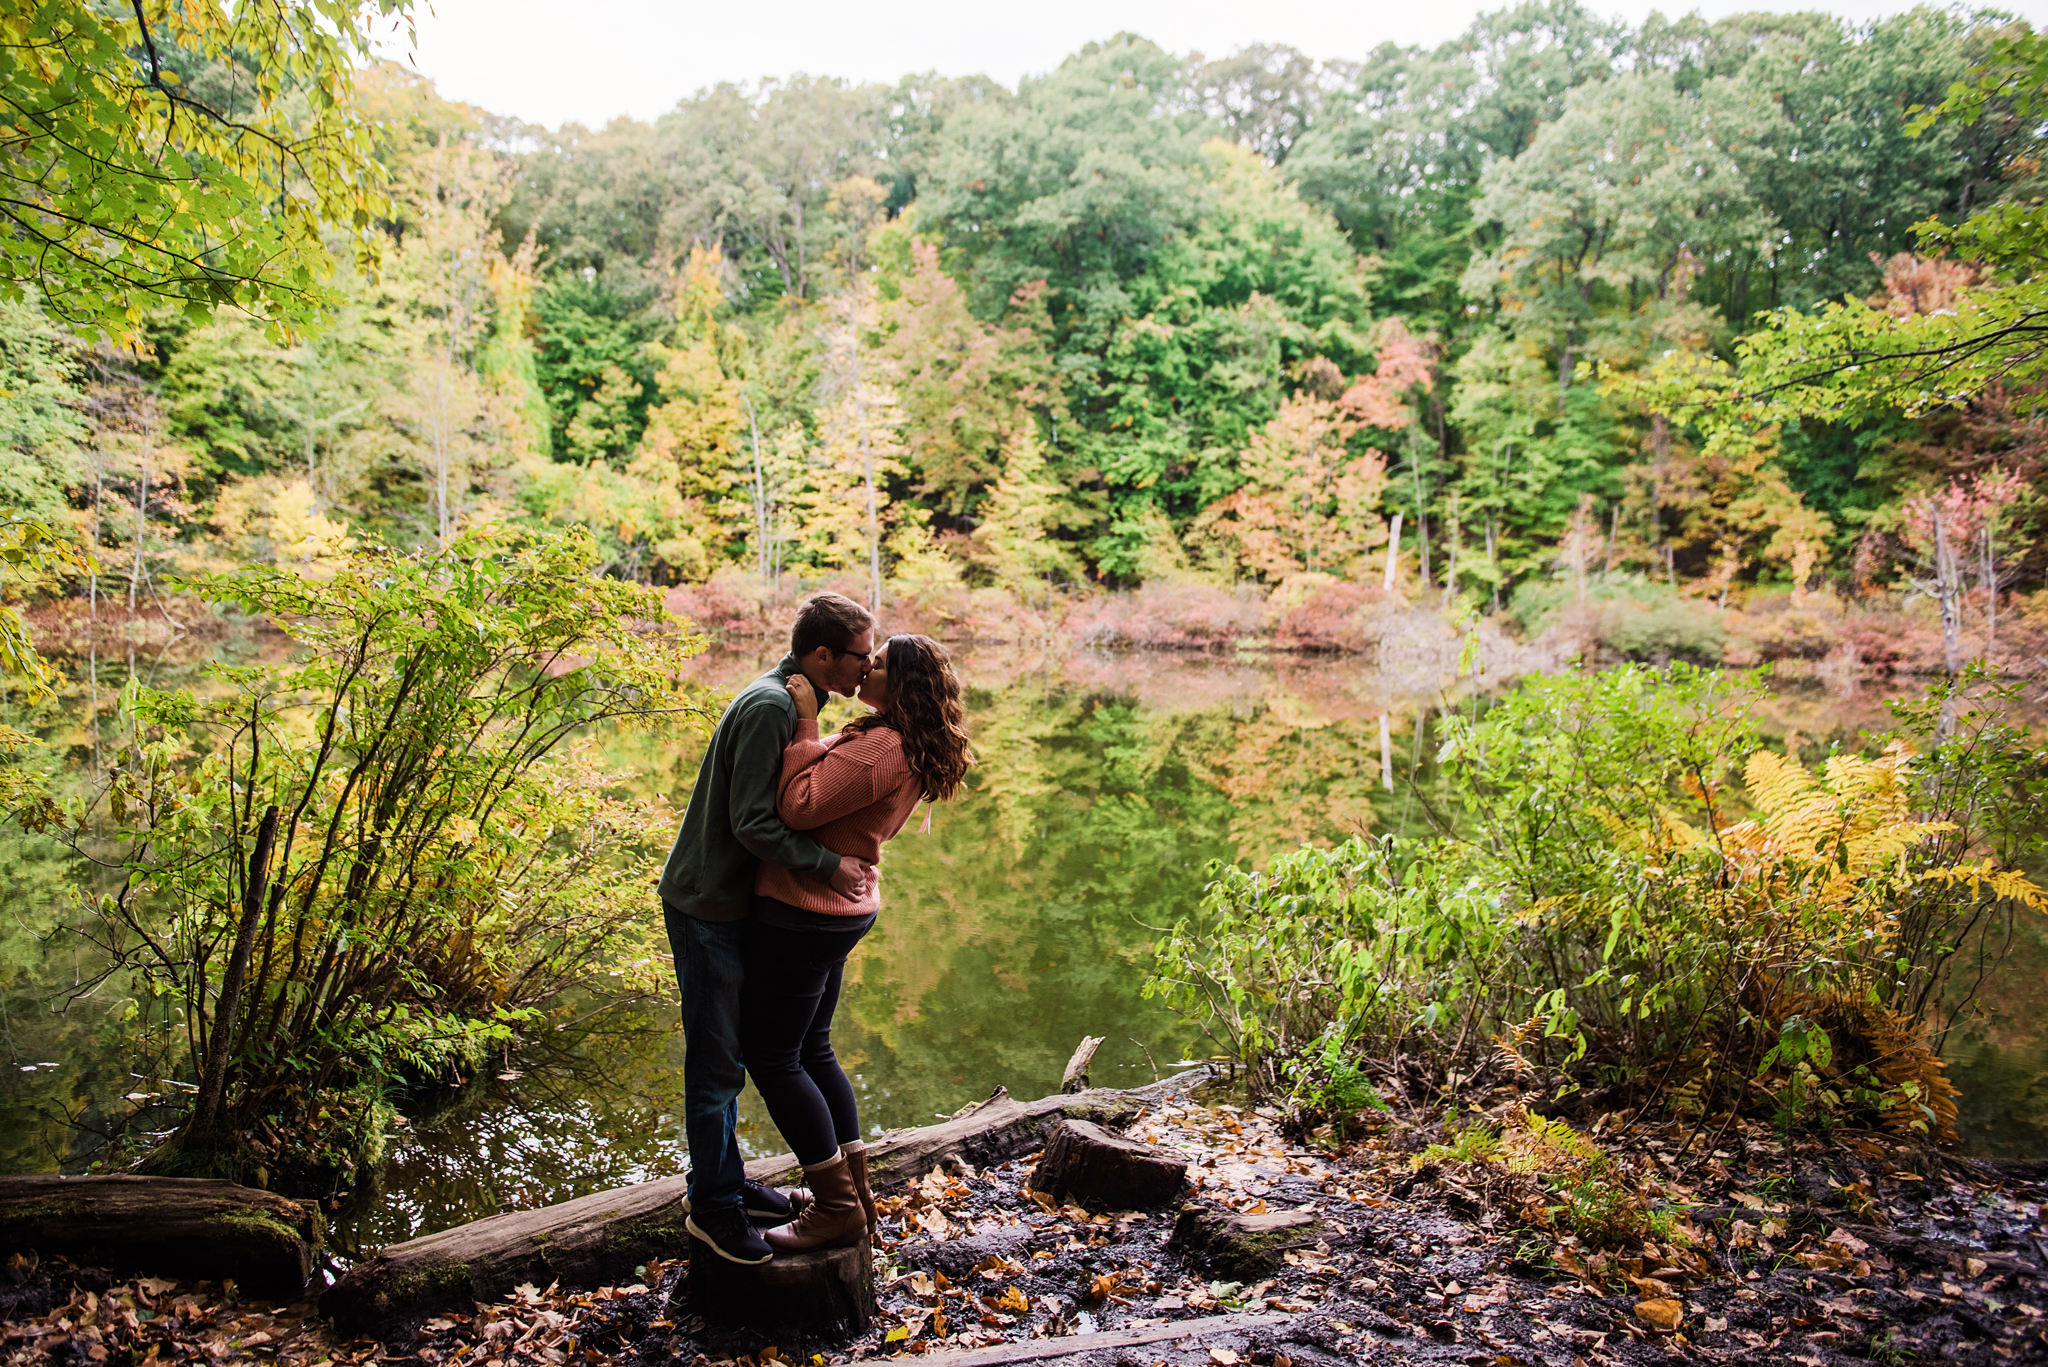 Mendon_Ponds_Park_Rochester_Engagement_Session_JILL_STUDIO_Rochester_NY_Photographer_DSC_5050.jpg